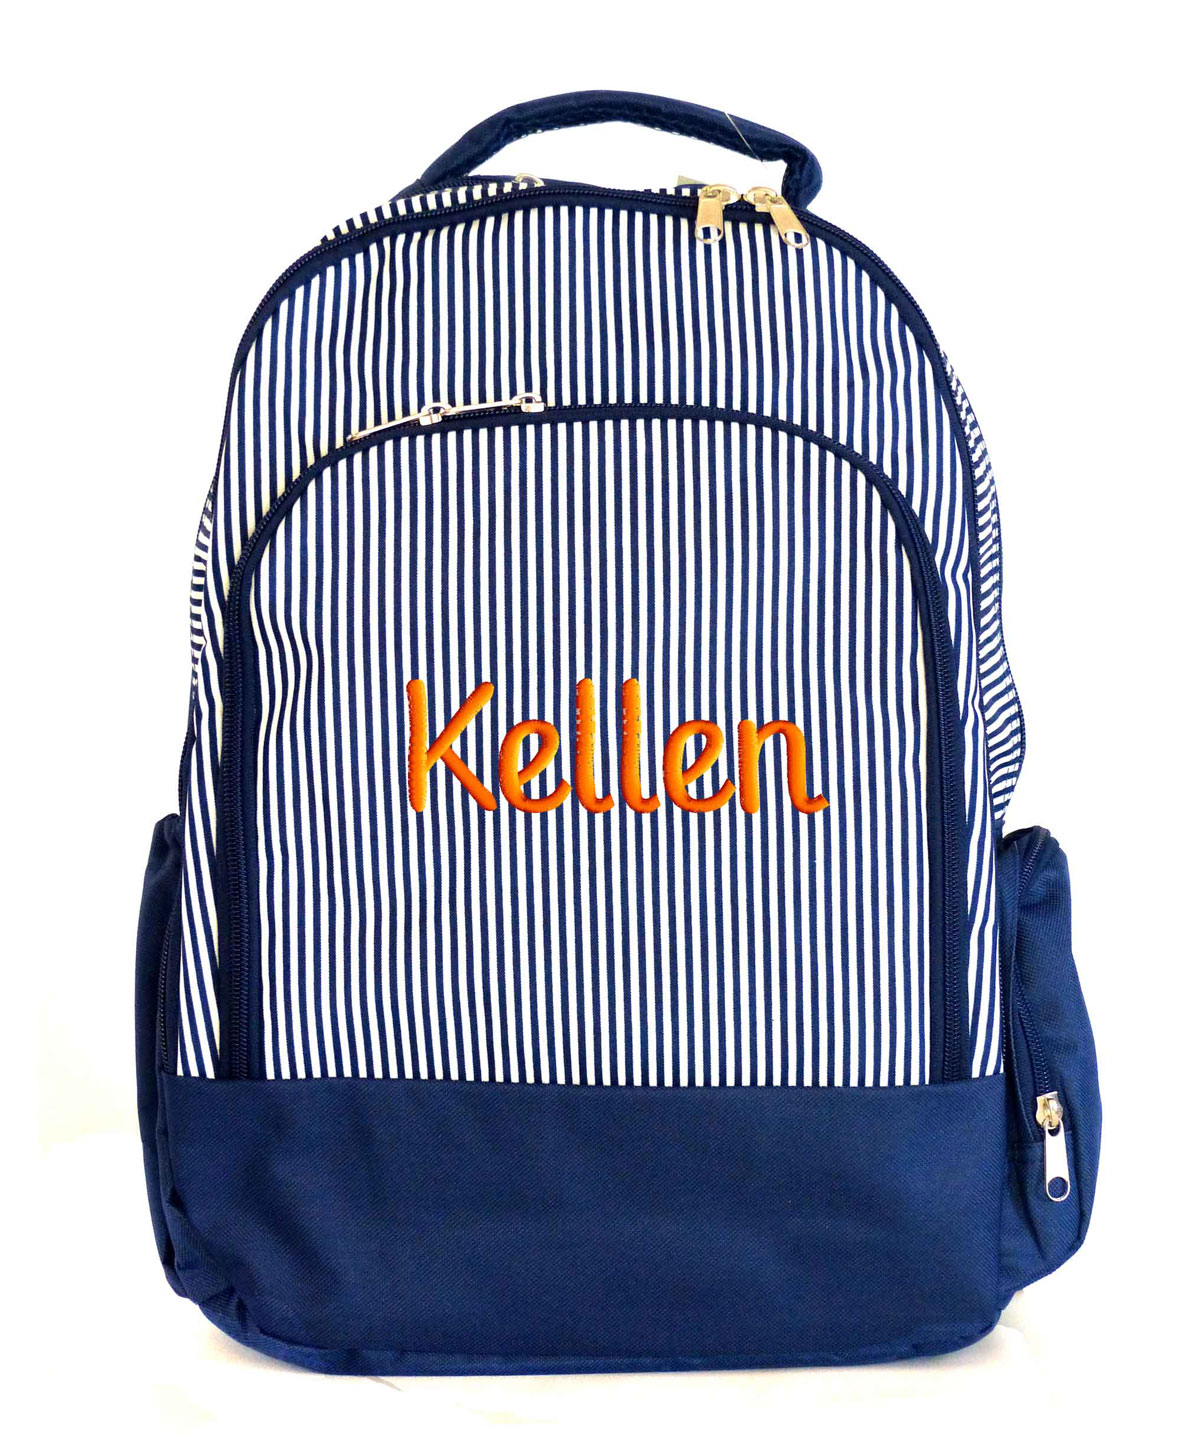 Personalized Kids Backpacks luBo6m1w